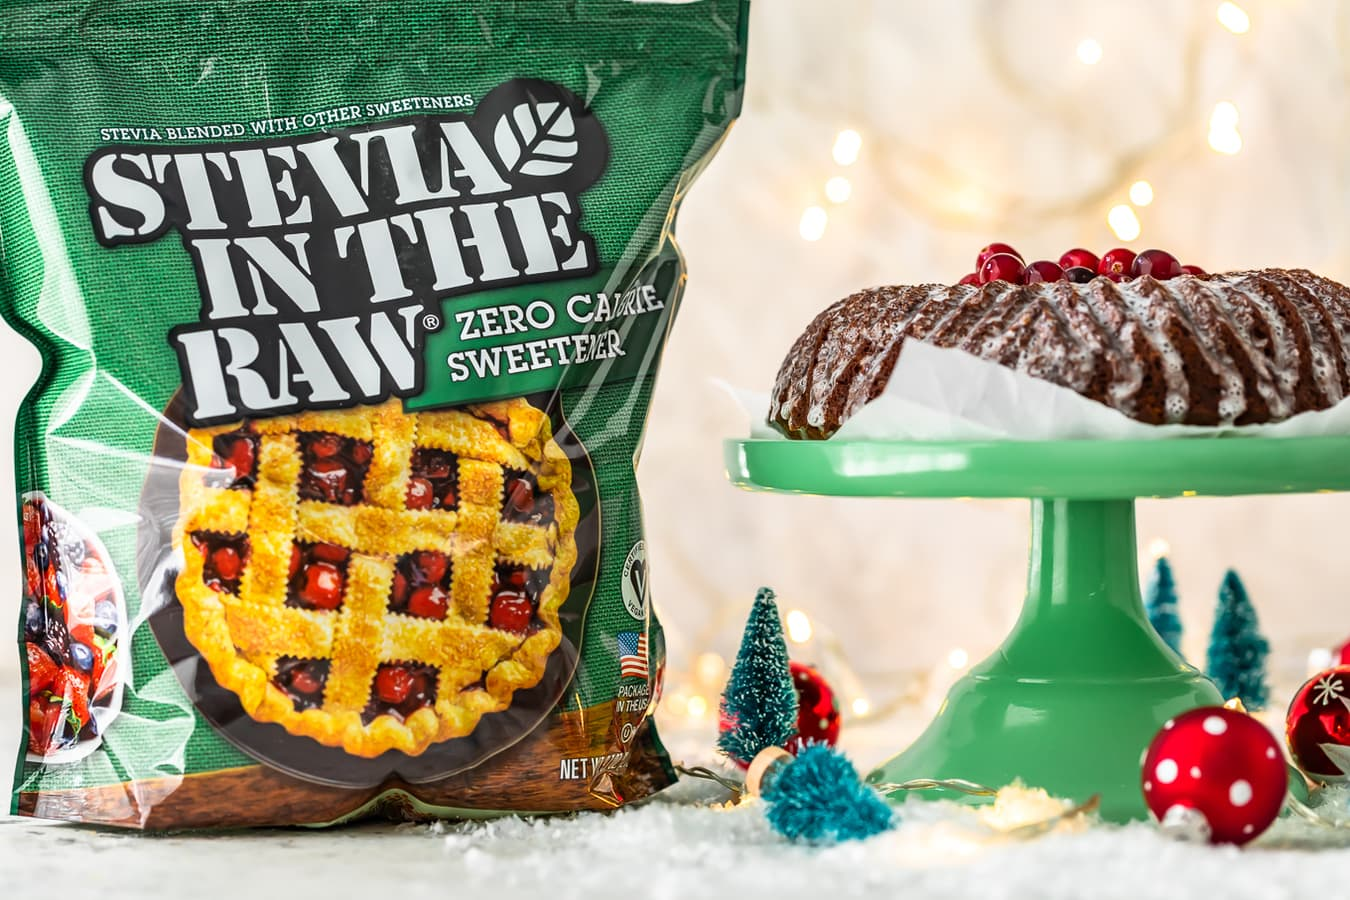 a bag of Stevia in the Raw next to a gingerbread bundt cake